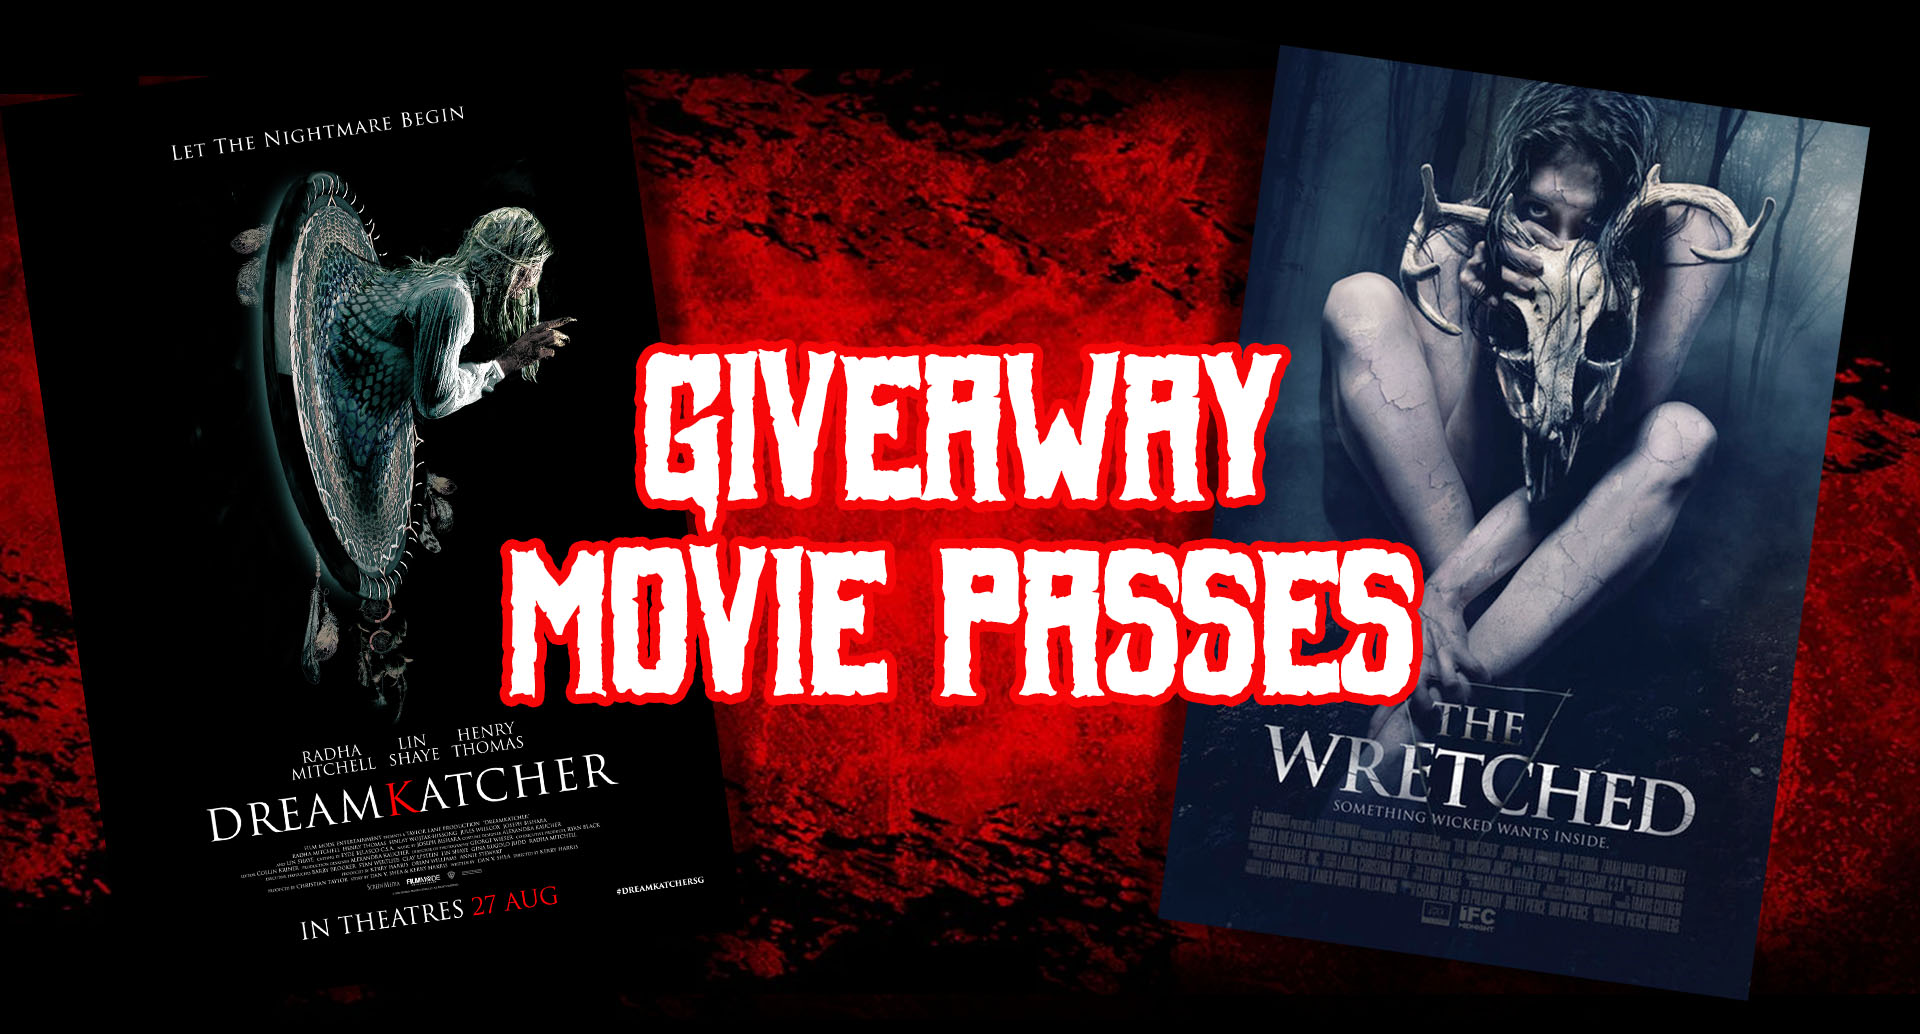 [Closed] Giveaway Movie Passes: The only thing better than a good scare? TWO good scares!